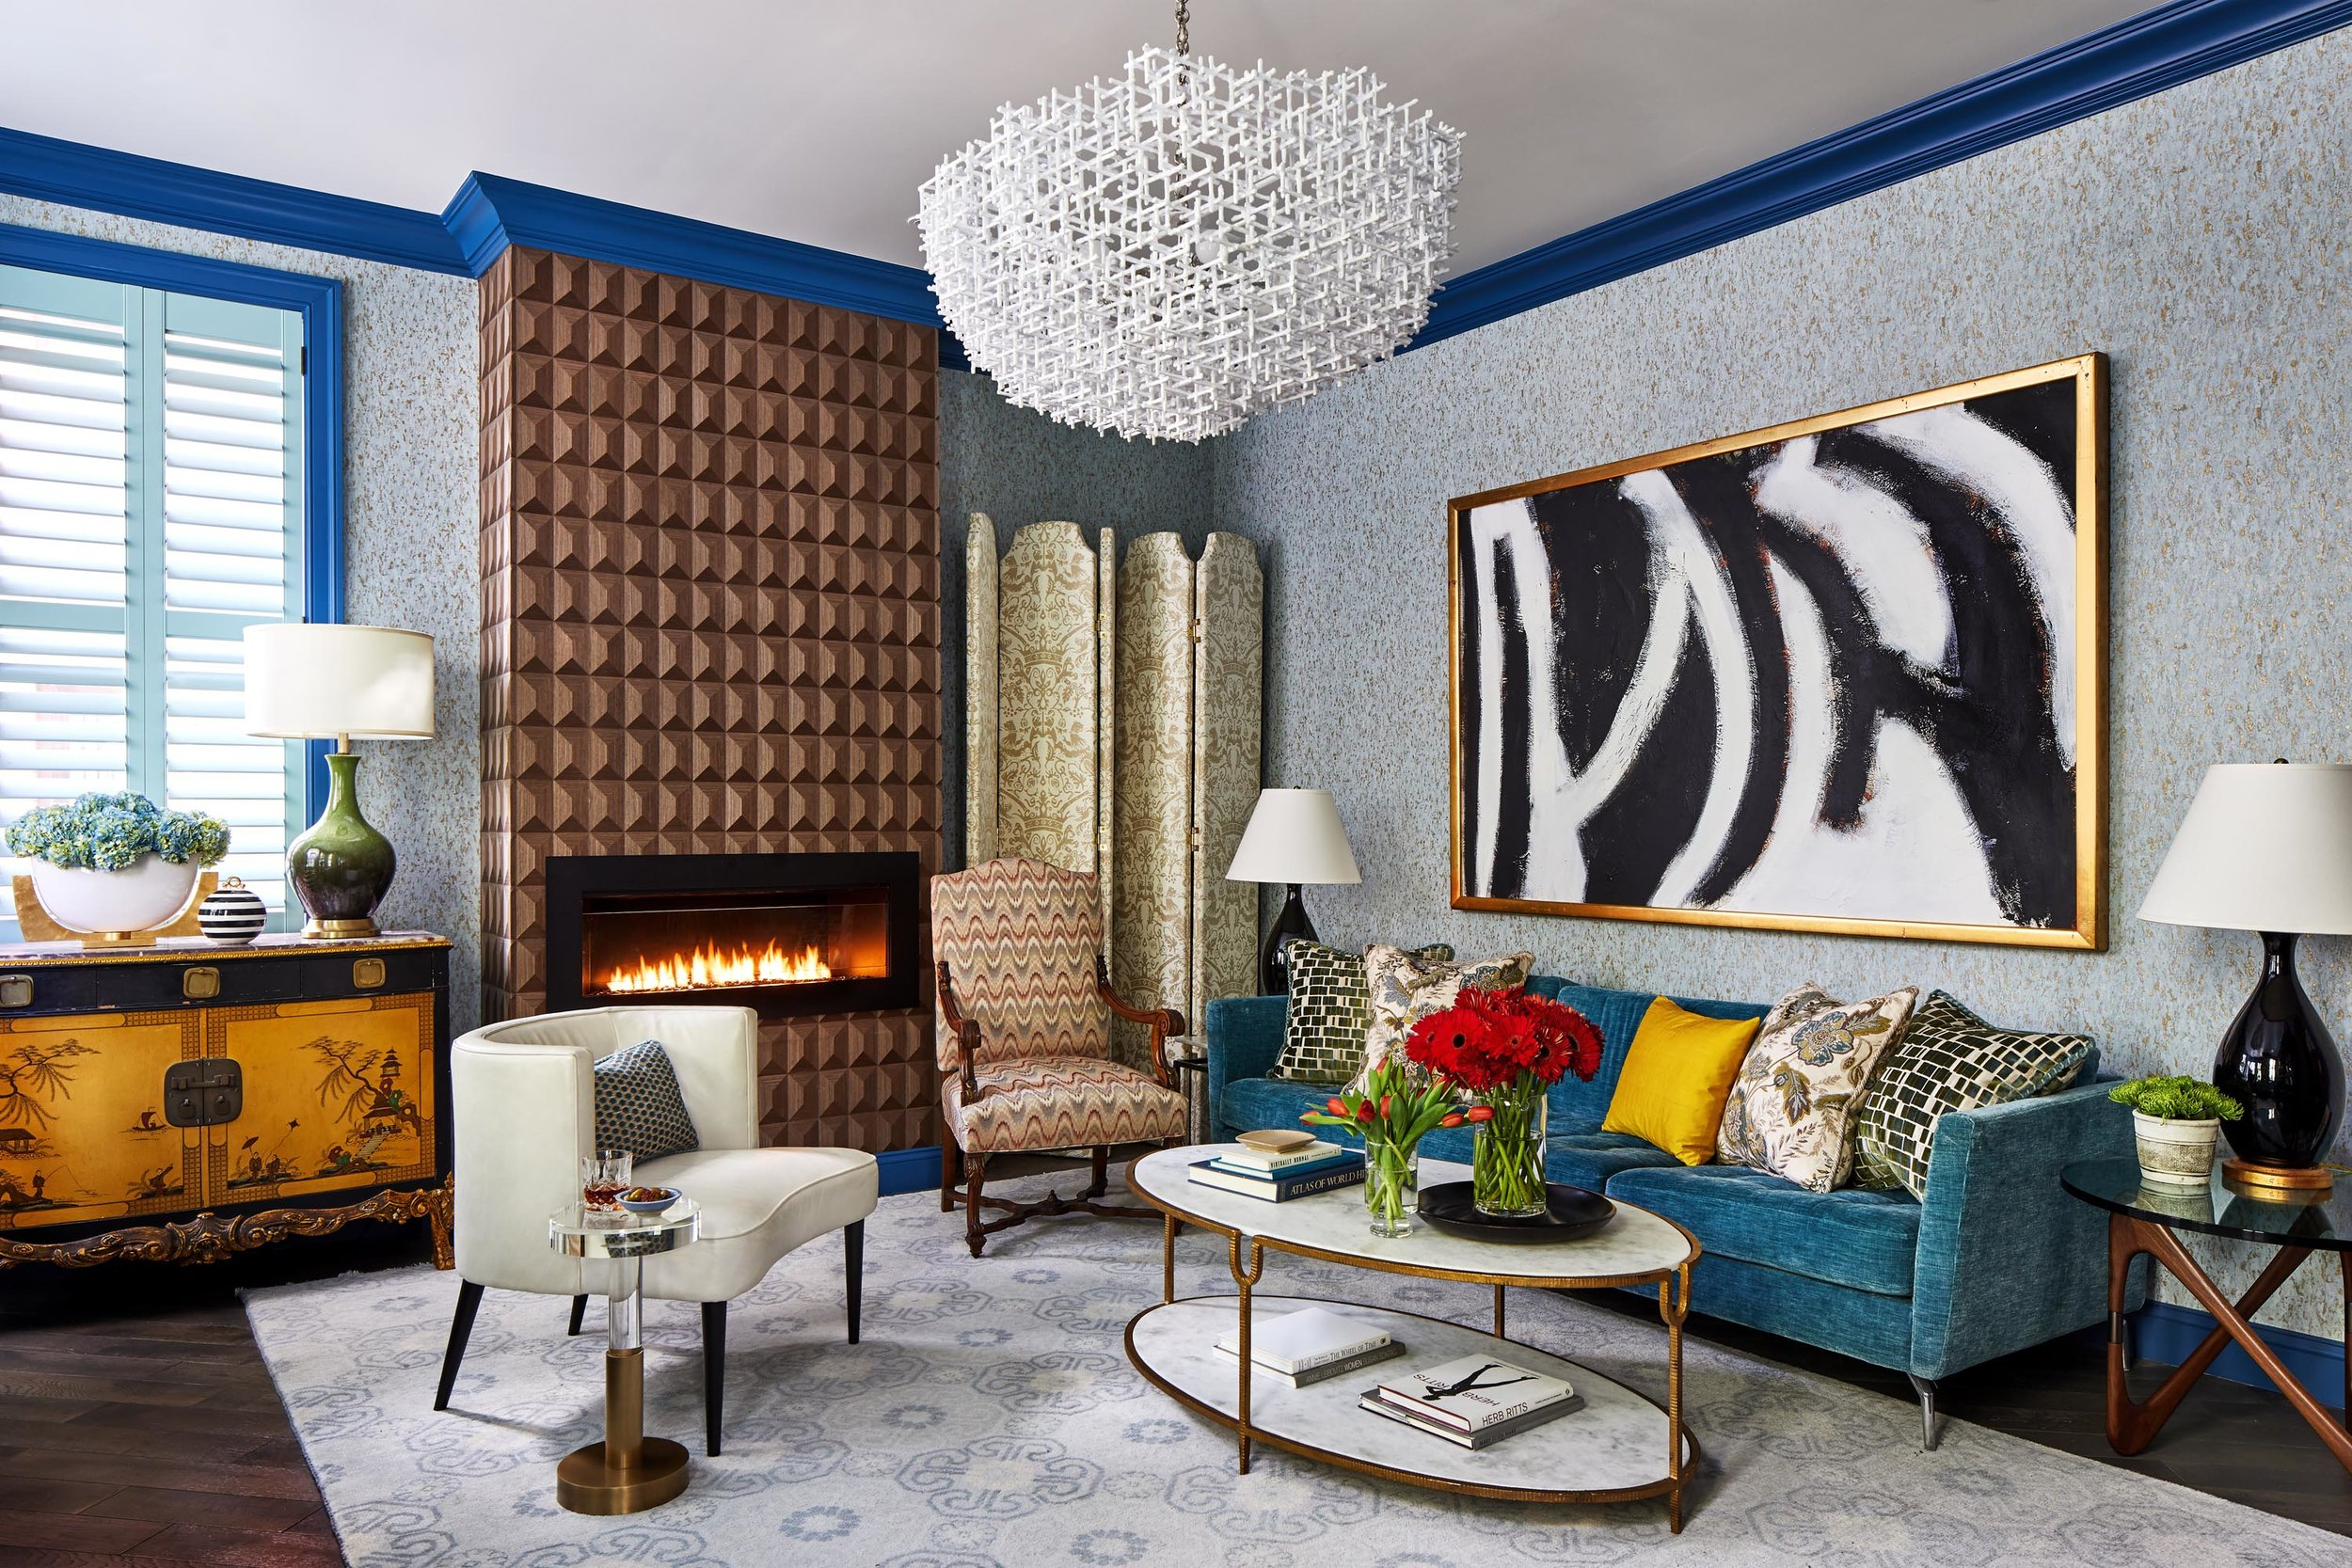 2-Contemporary-Living-Room-Top-Decorator-Best-Interior-Designers-Boston-South-End-Back-Bay-Seaport-Dane-Austin-Design.jpg